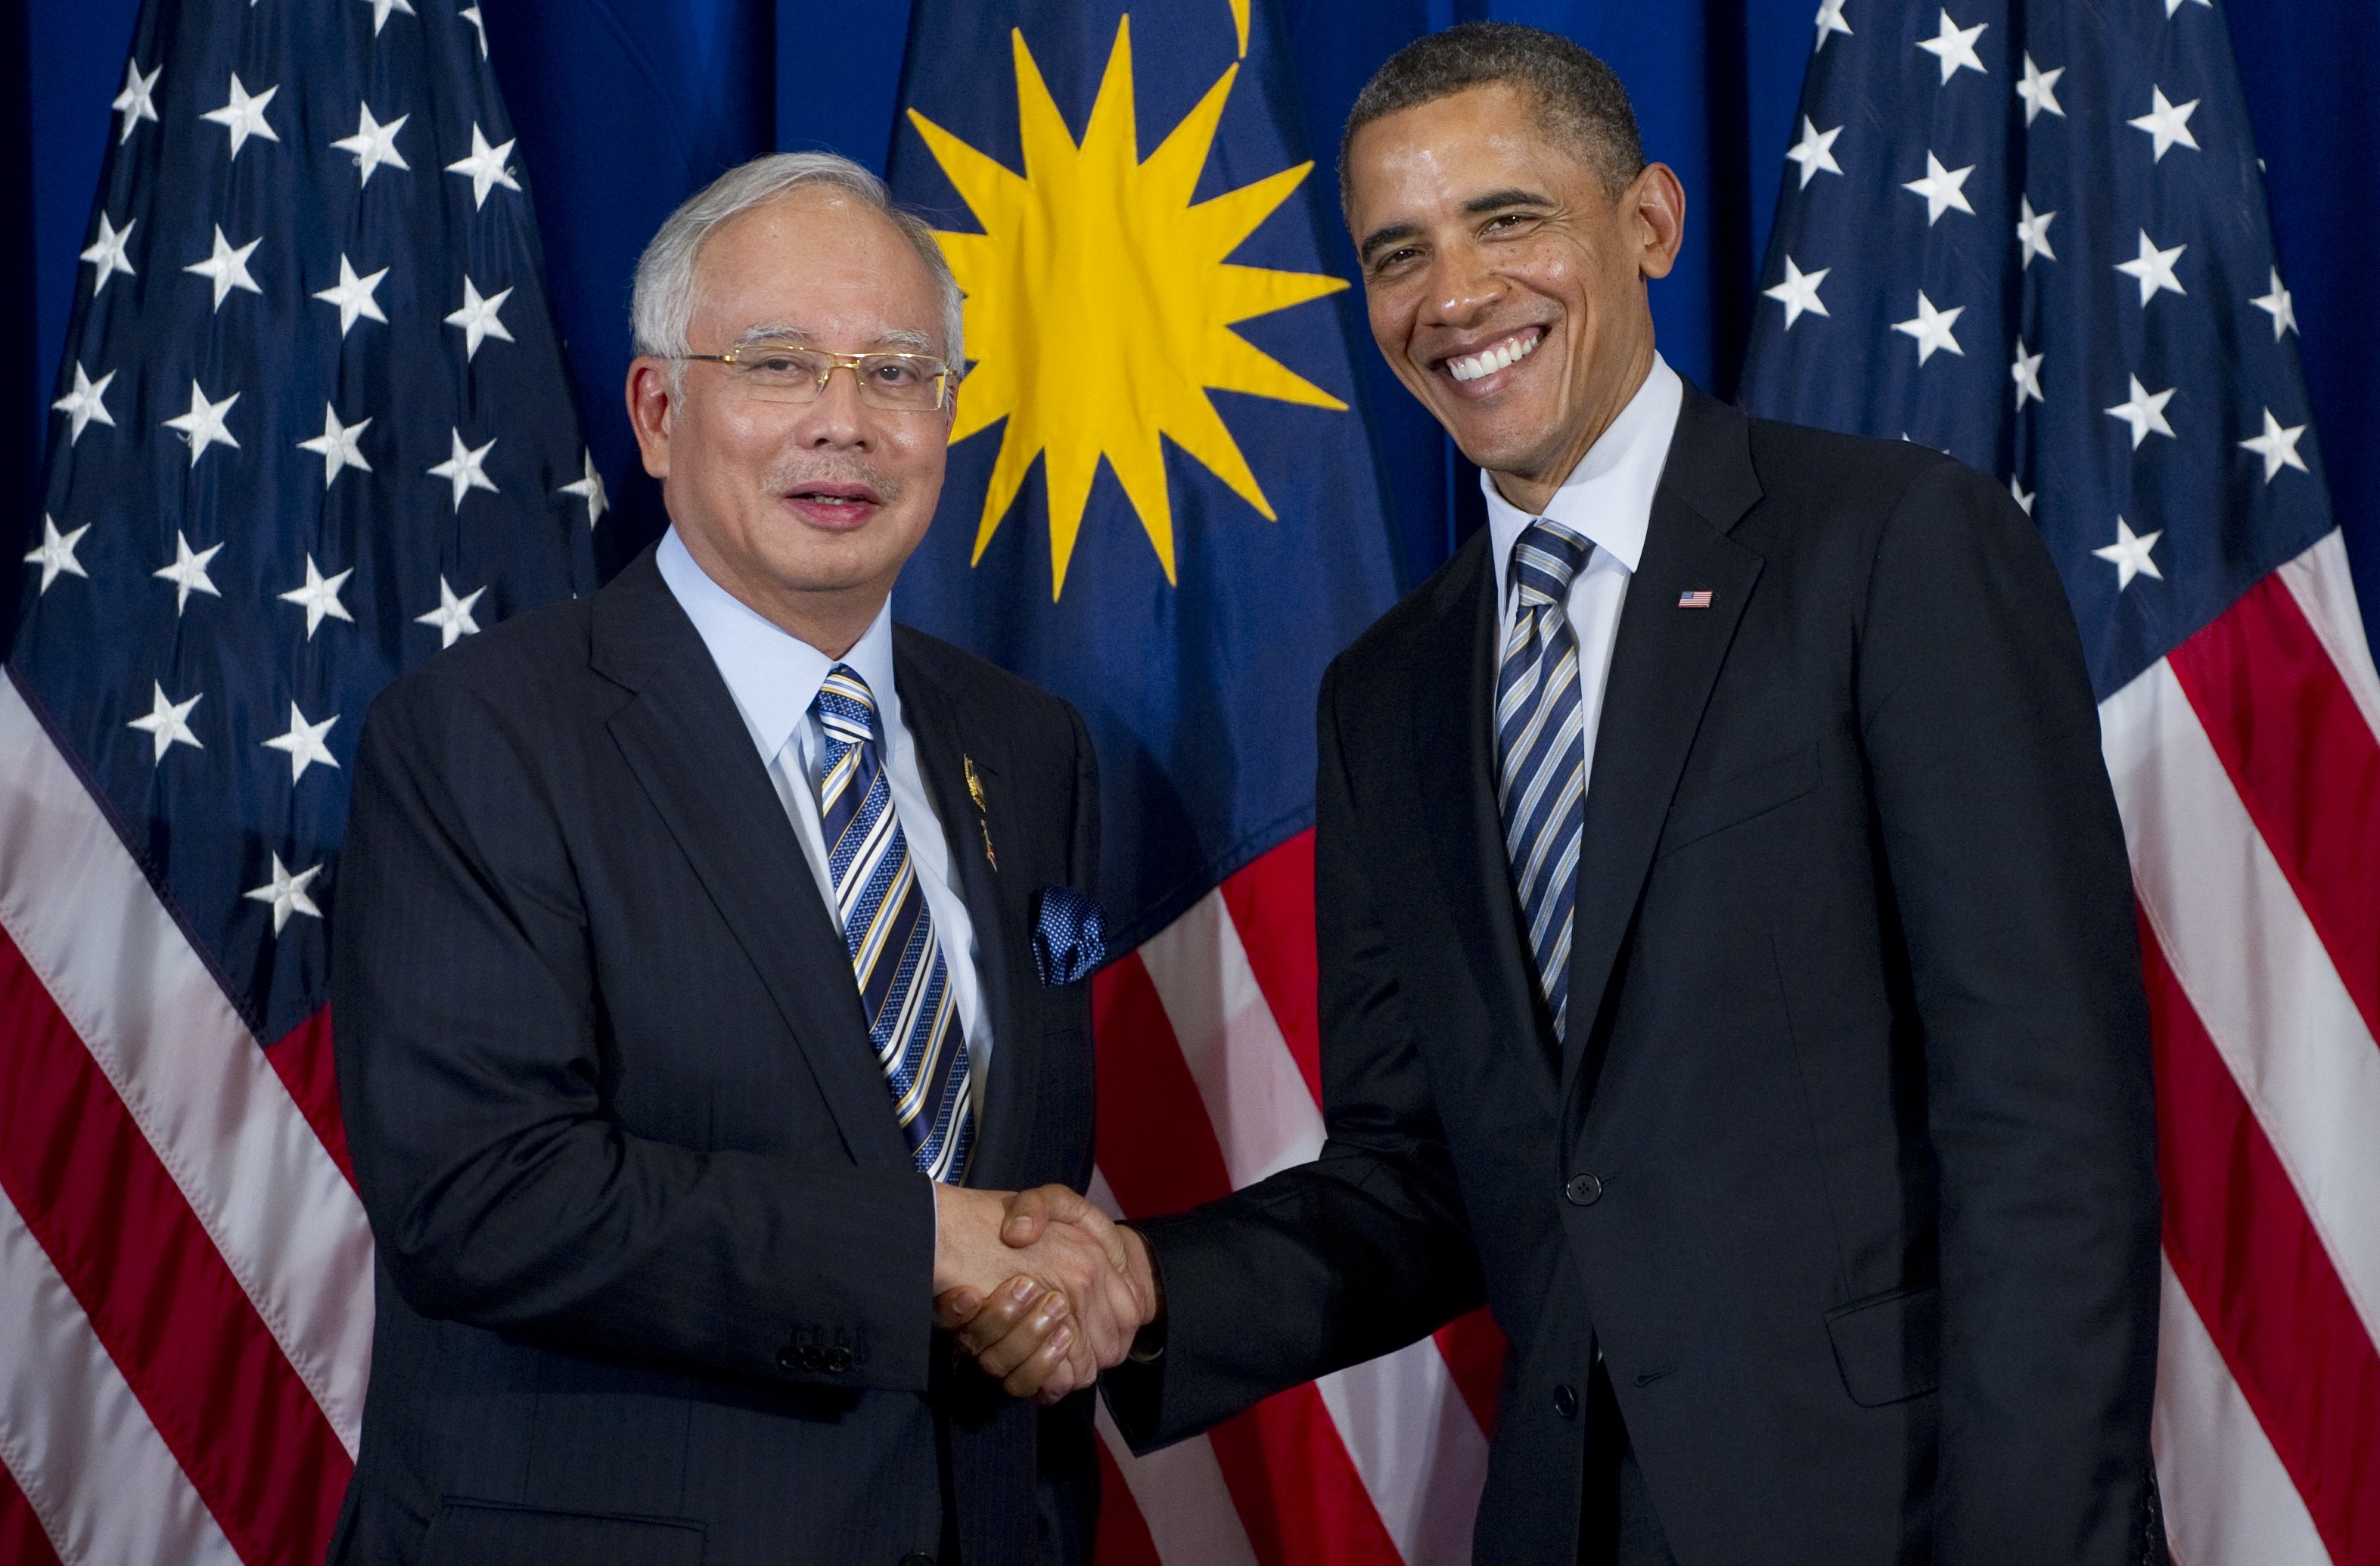 U.S. President Barack Obama shakes hands with Prime Minister Najib Razak of Malaysia during a meeting on the sidelines of the ASEAN and East Asia summits in Nusa Dua on Indonesia's resort island of Bali, on Nov. 18, 2011.